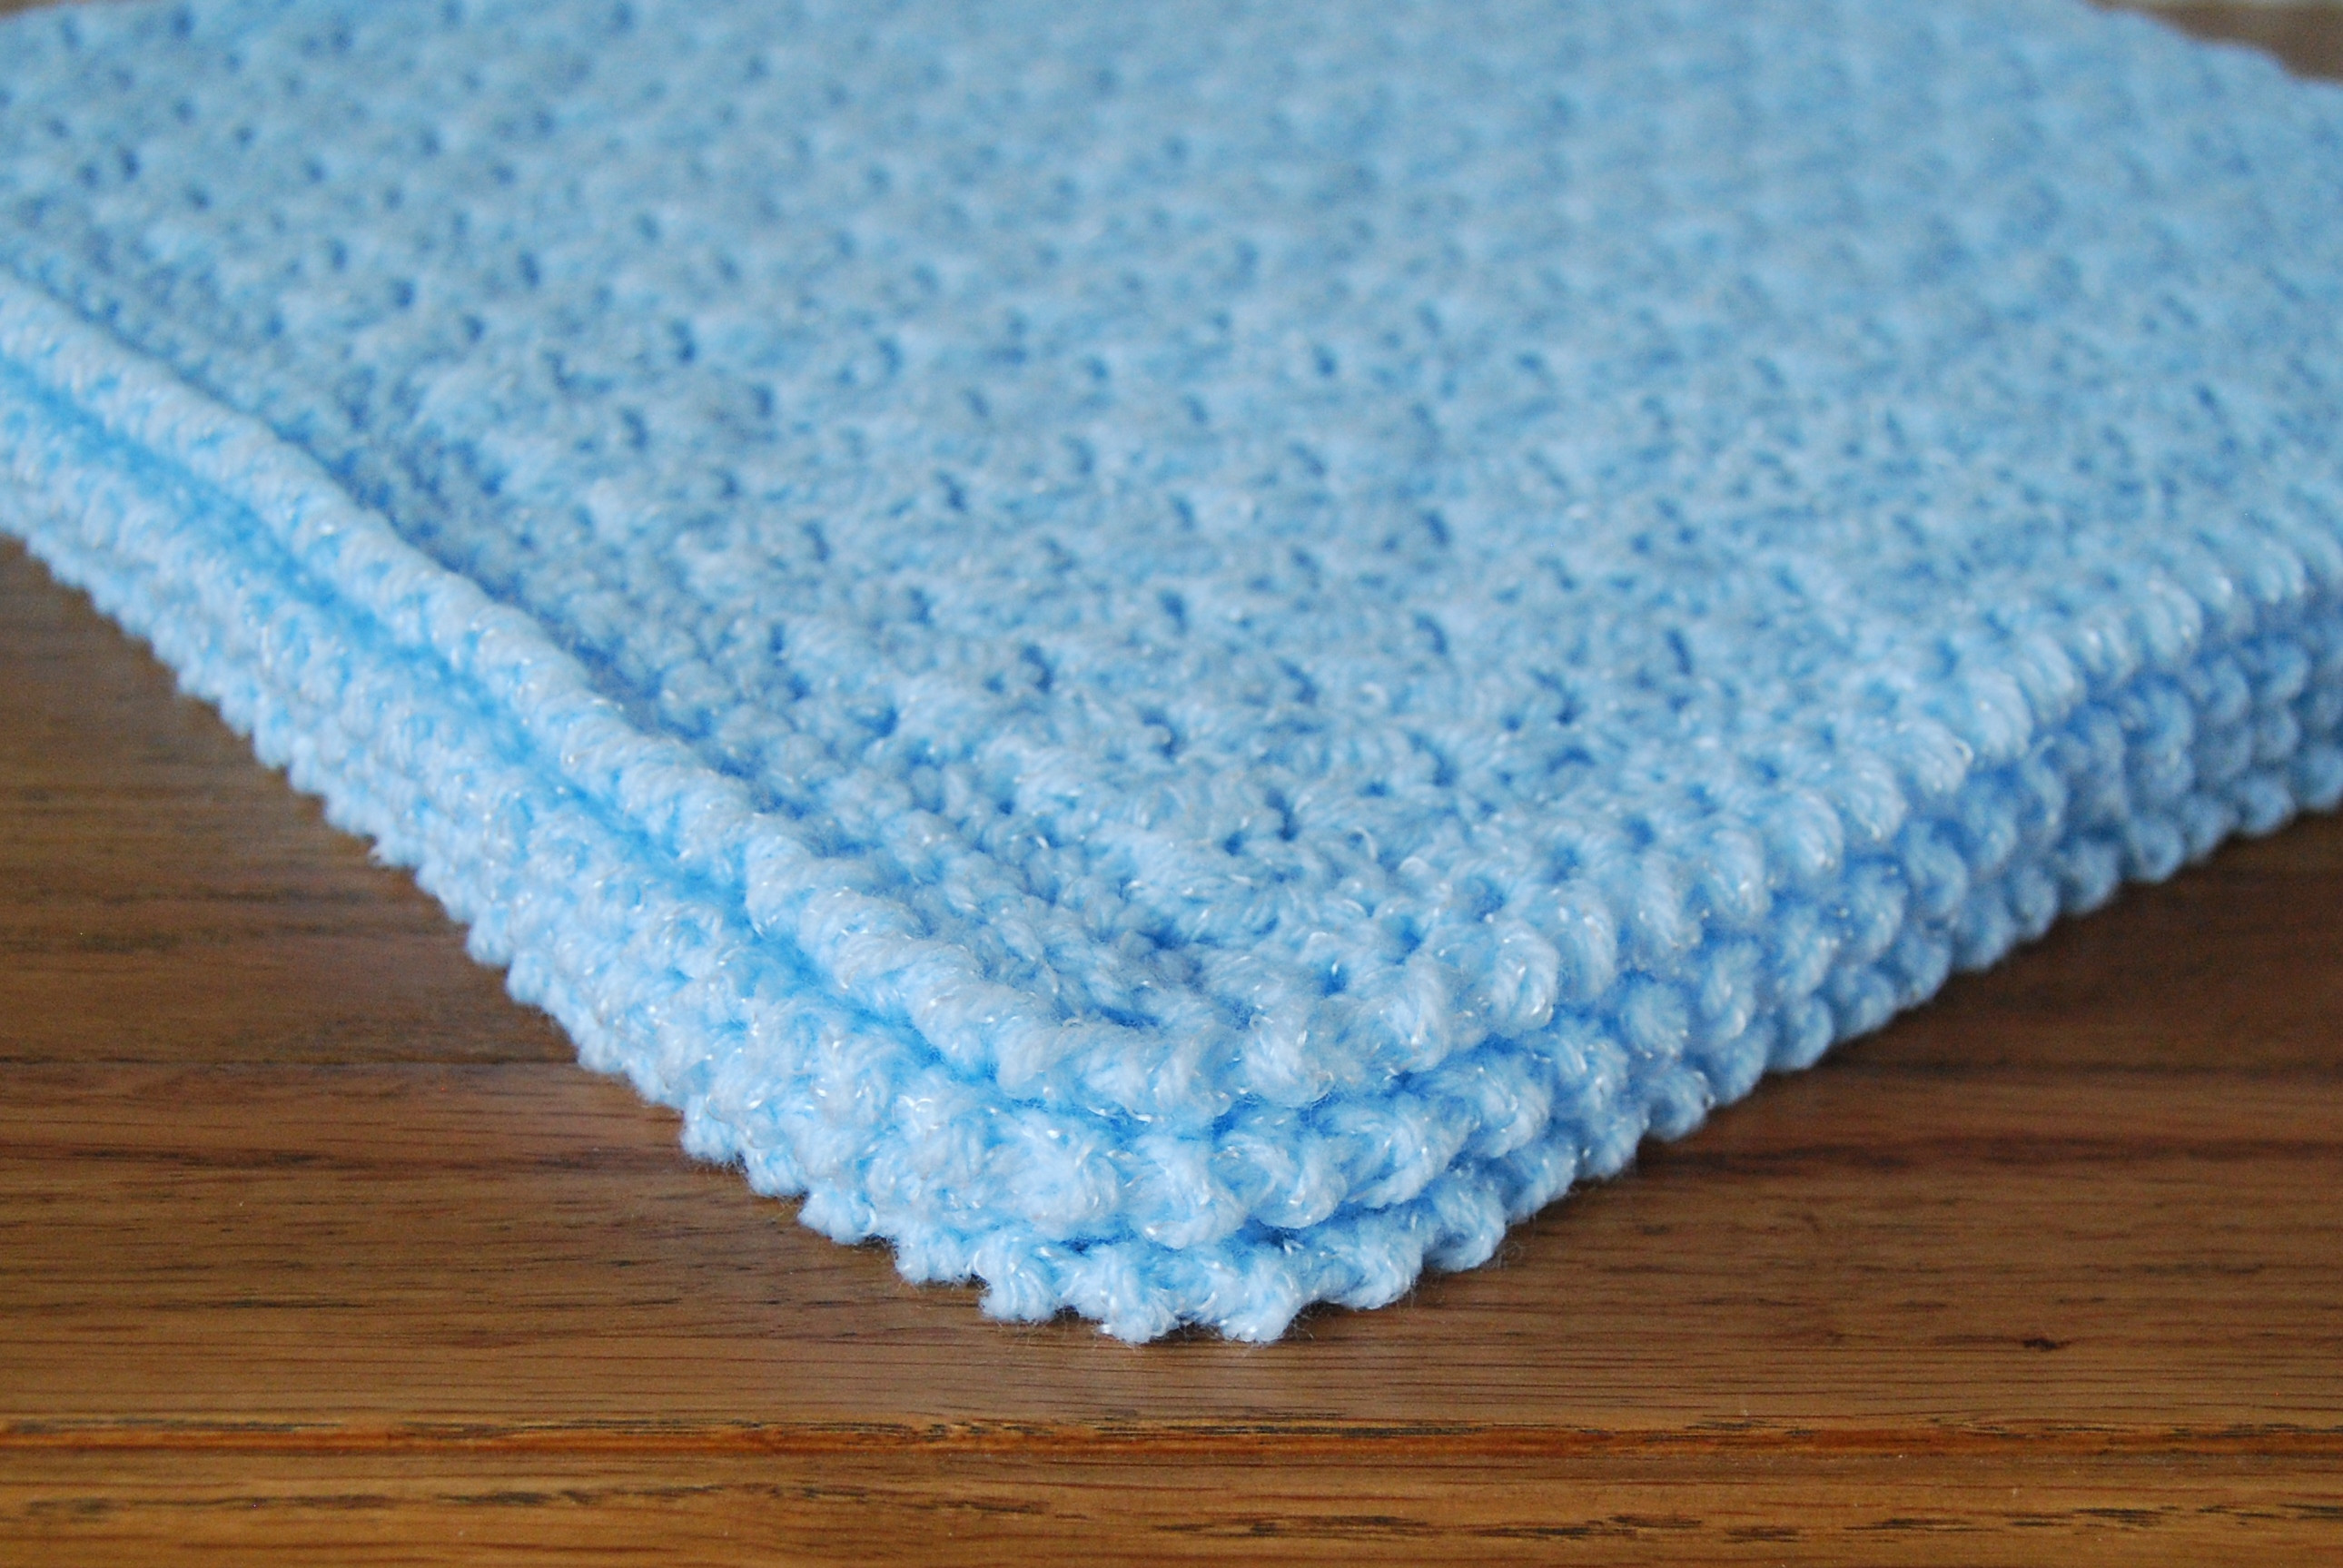 Baby Boy Crochet Blanket Patterns Lovely Beautiful Baby Boy Blanket Crochet Pattern for Pram Of Baby Boy Crochet Blanket Patterns New Beautiful Baby Boy Blanket Crochet Pattern for Pram